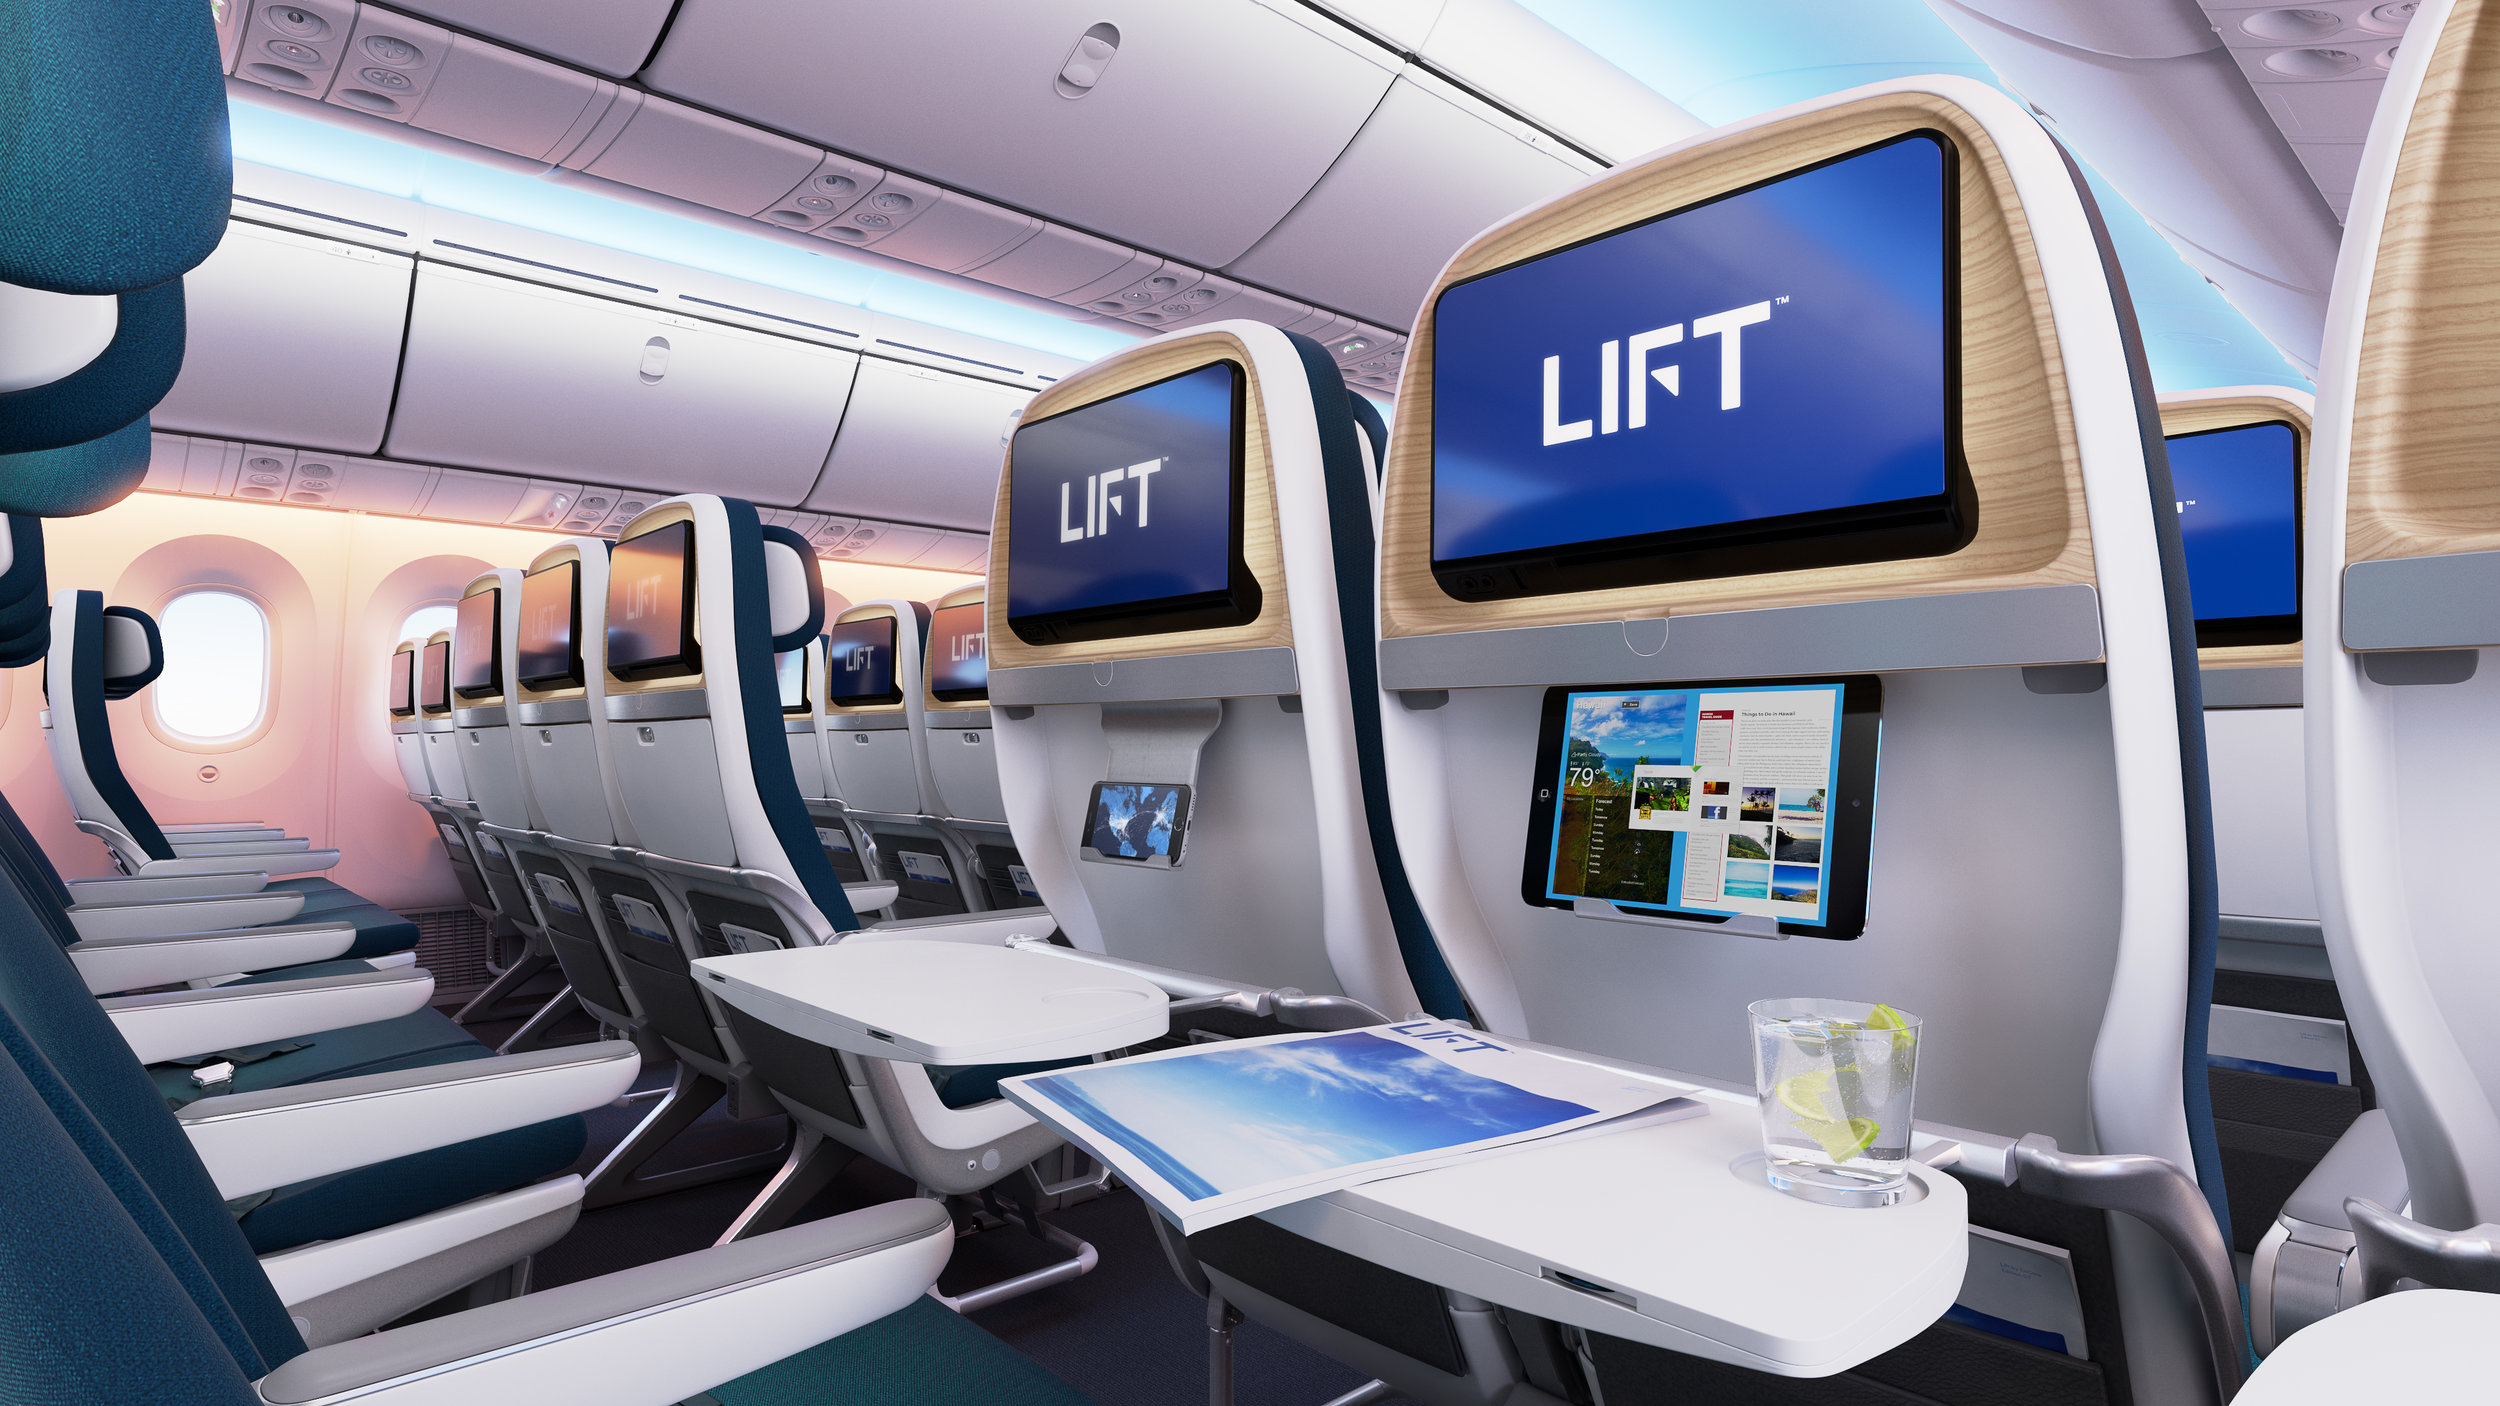 LIFT by EnCore 787 Dreamliner Tourist Class Seating.jpg